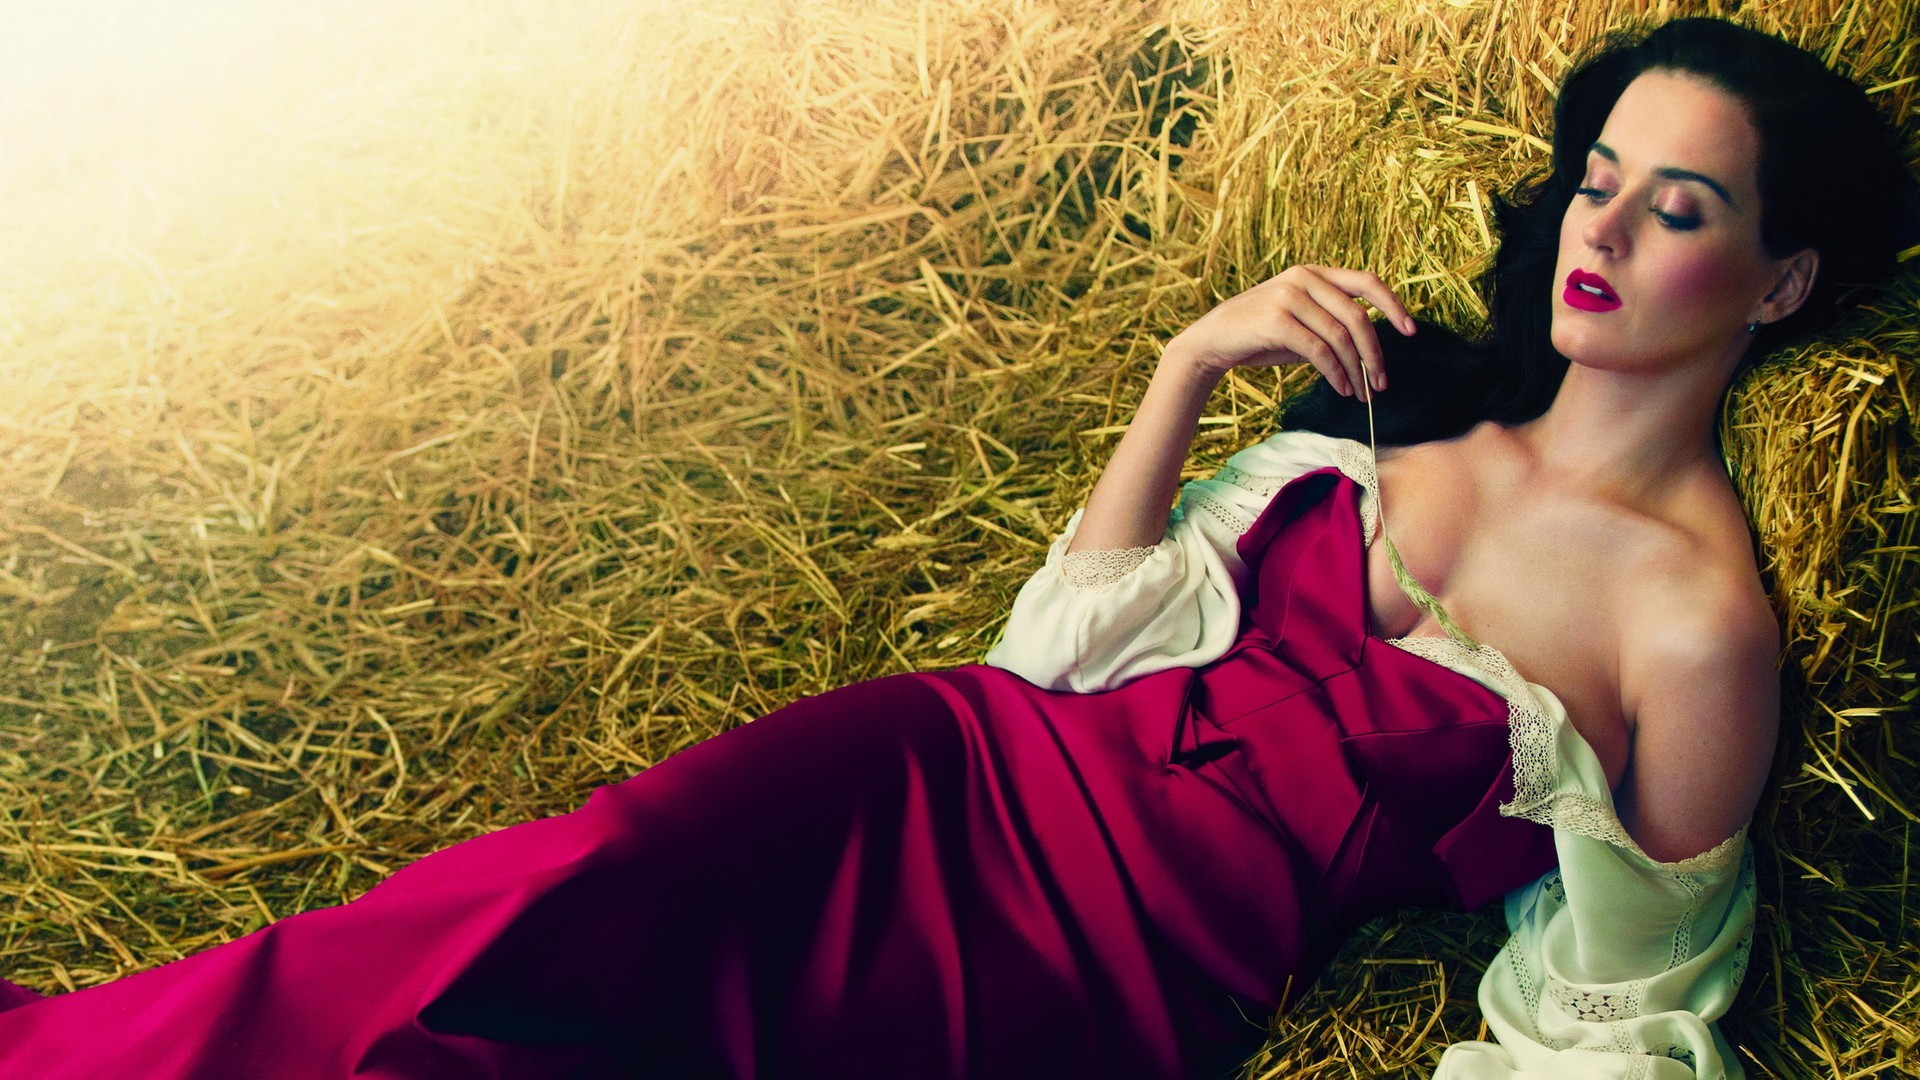 Katy Perry HD Wallpapers Wallpaper Images Of Katy Perry Wallpapers  Wallpapers)